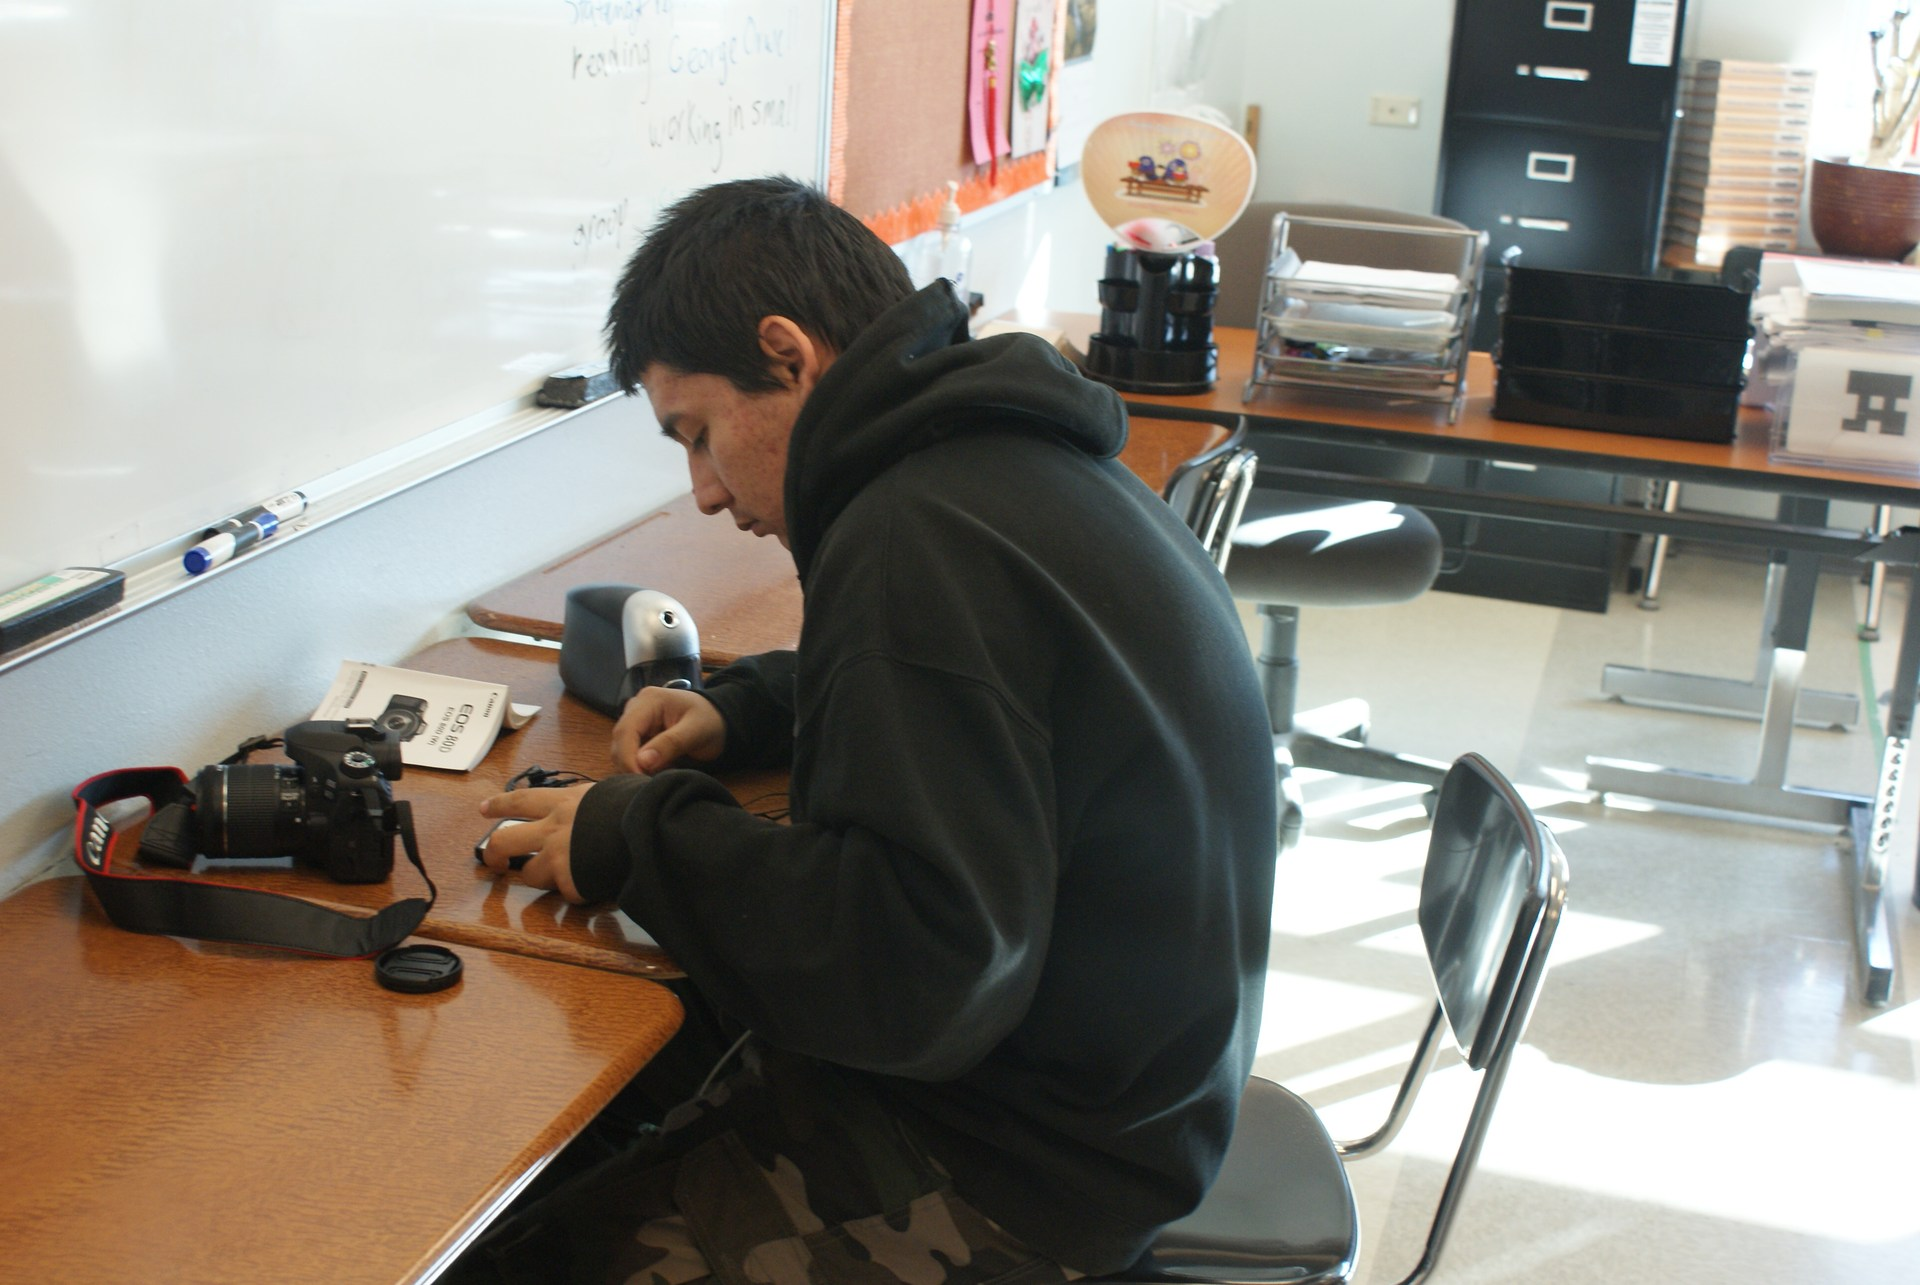 Student prepares camera for video shoot.